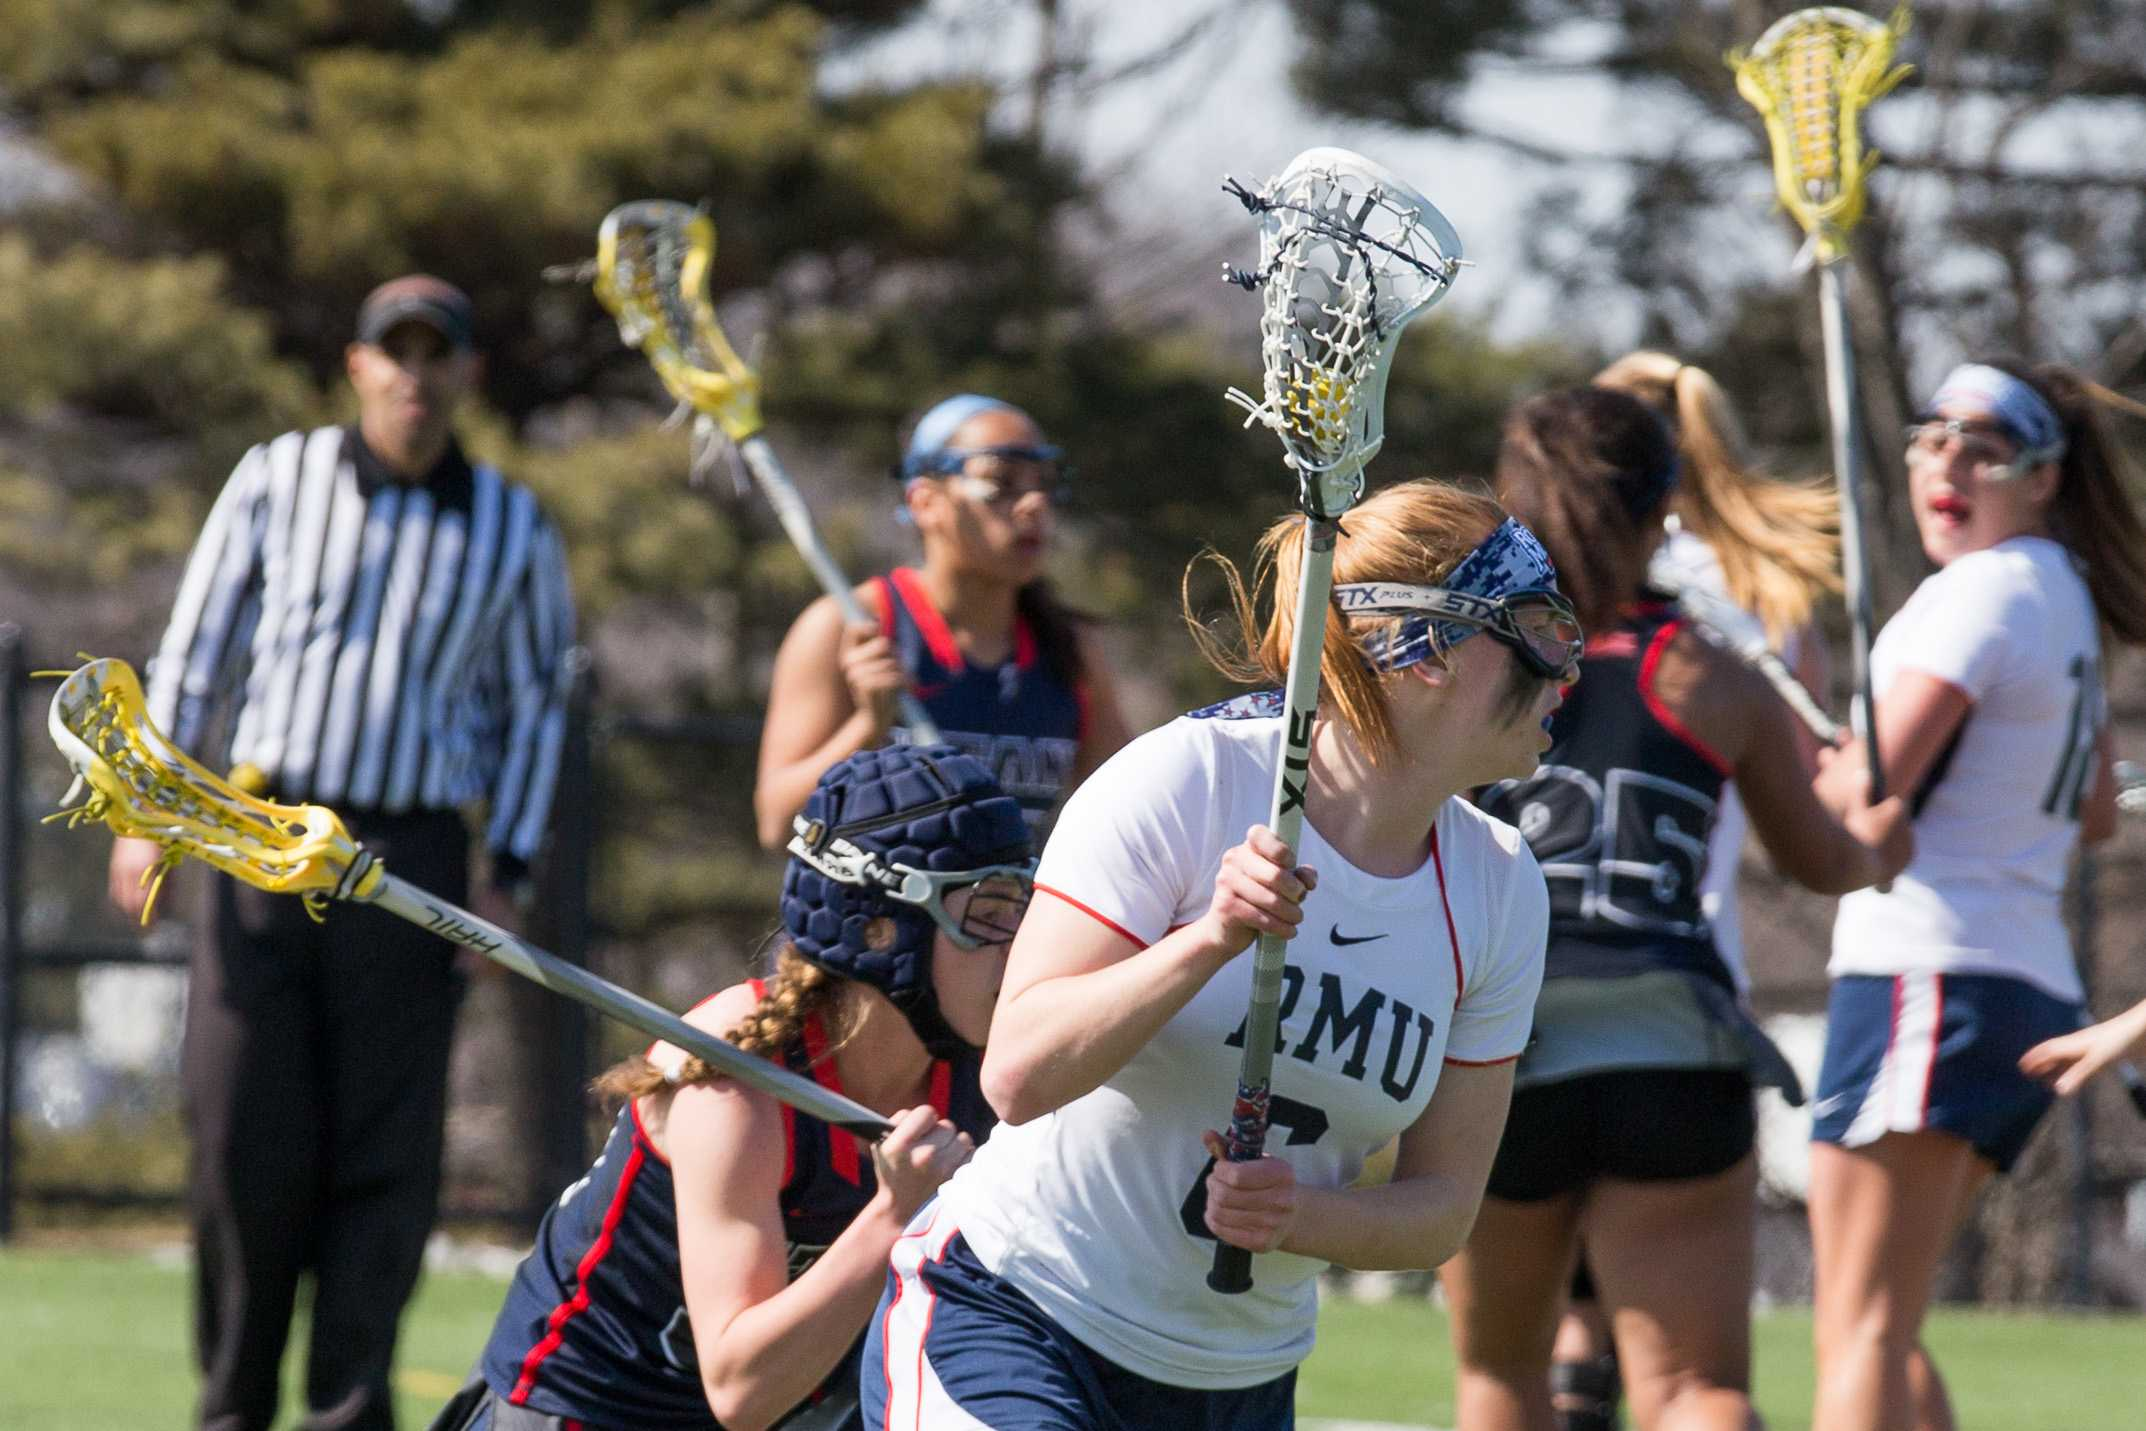 Dana Davis netted two goals against Detroit Friday but the Colonials fell one score short of the victory.